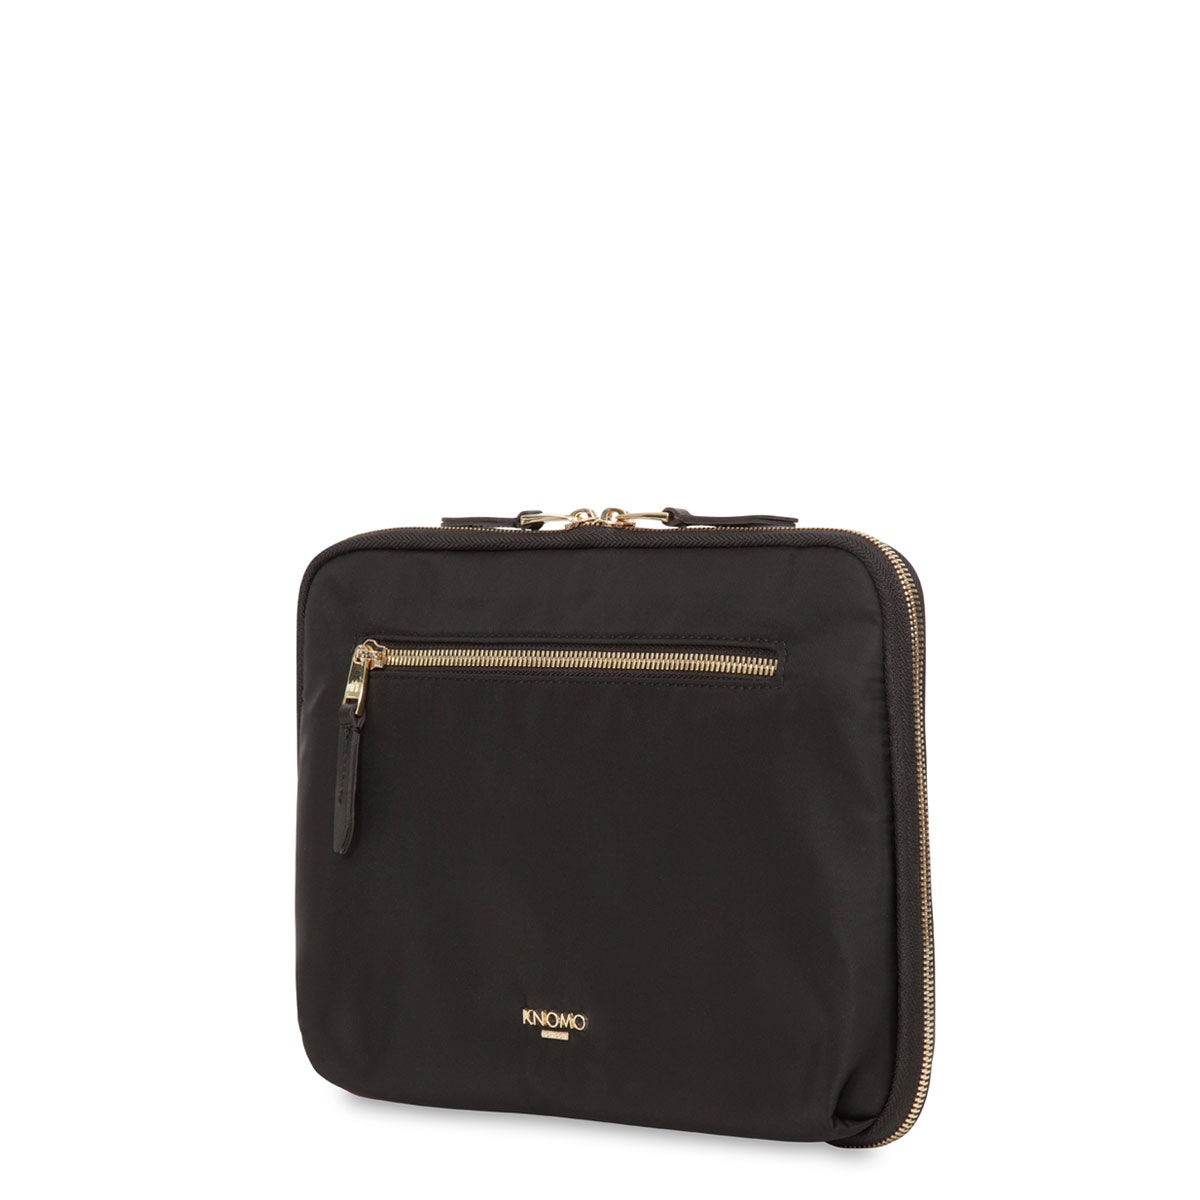 "Mayfair Knomad organizer - 10.5"" Mayfair Knomad Organizer - 10.5"" -  Black 